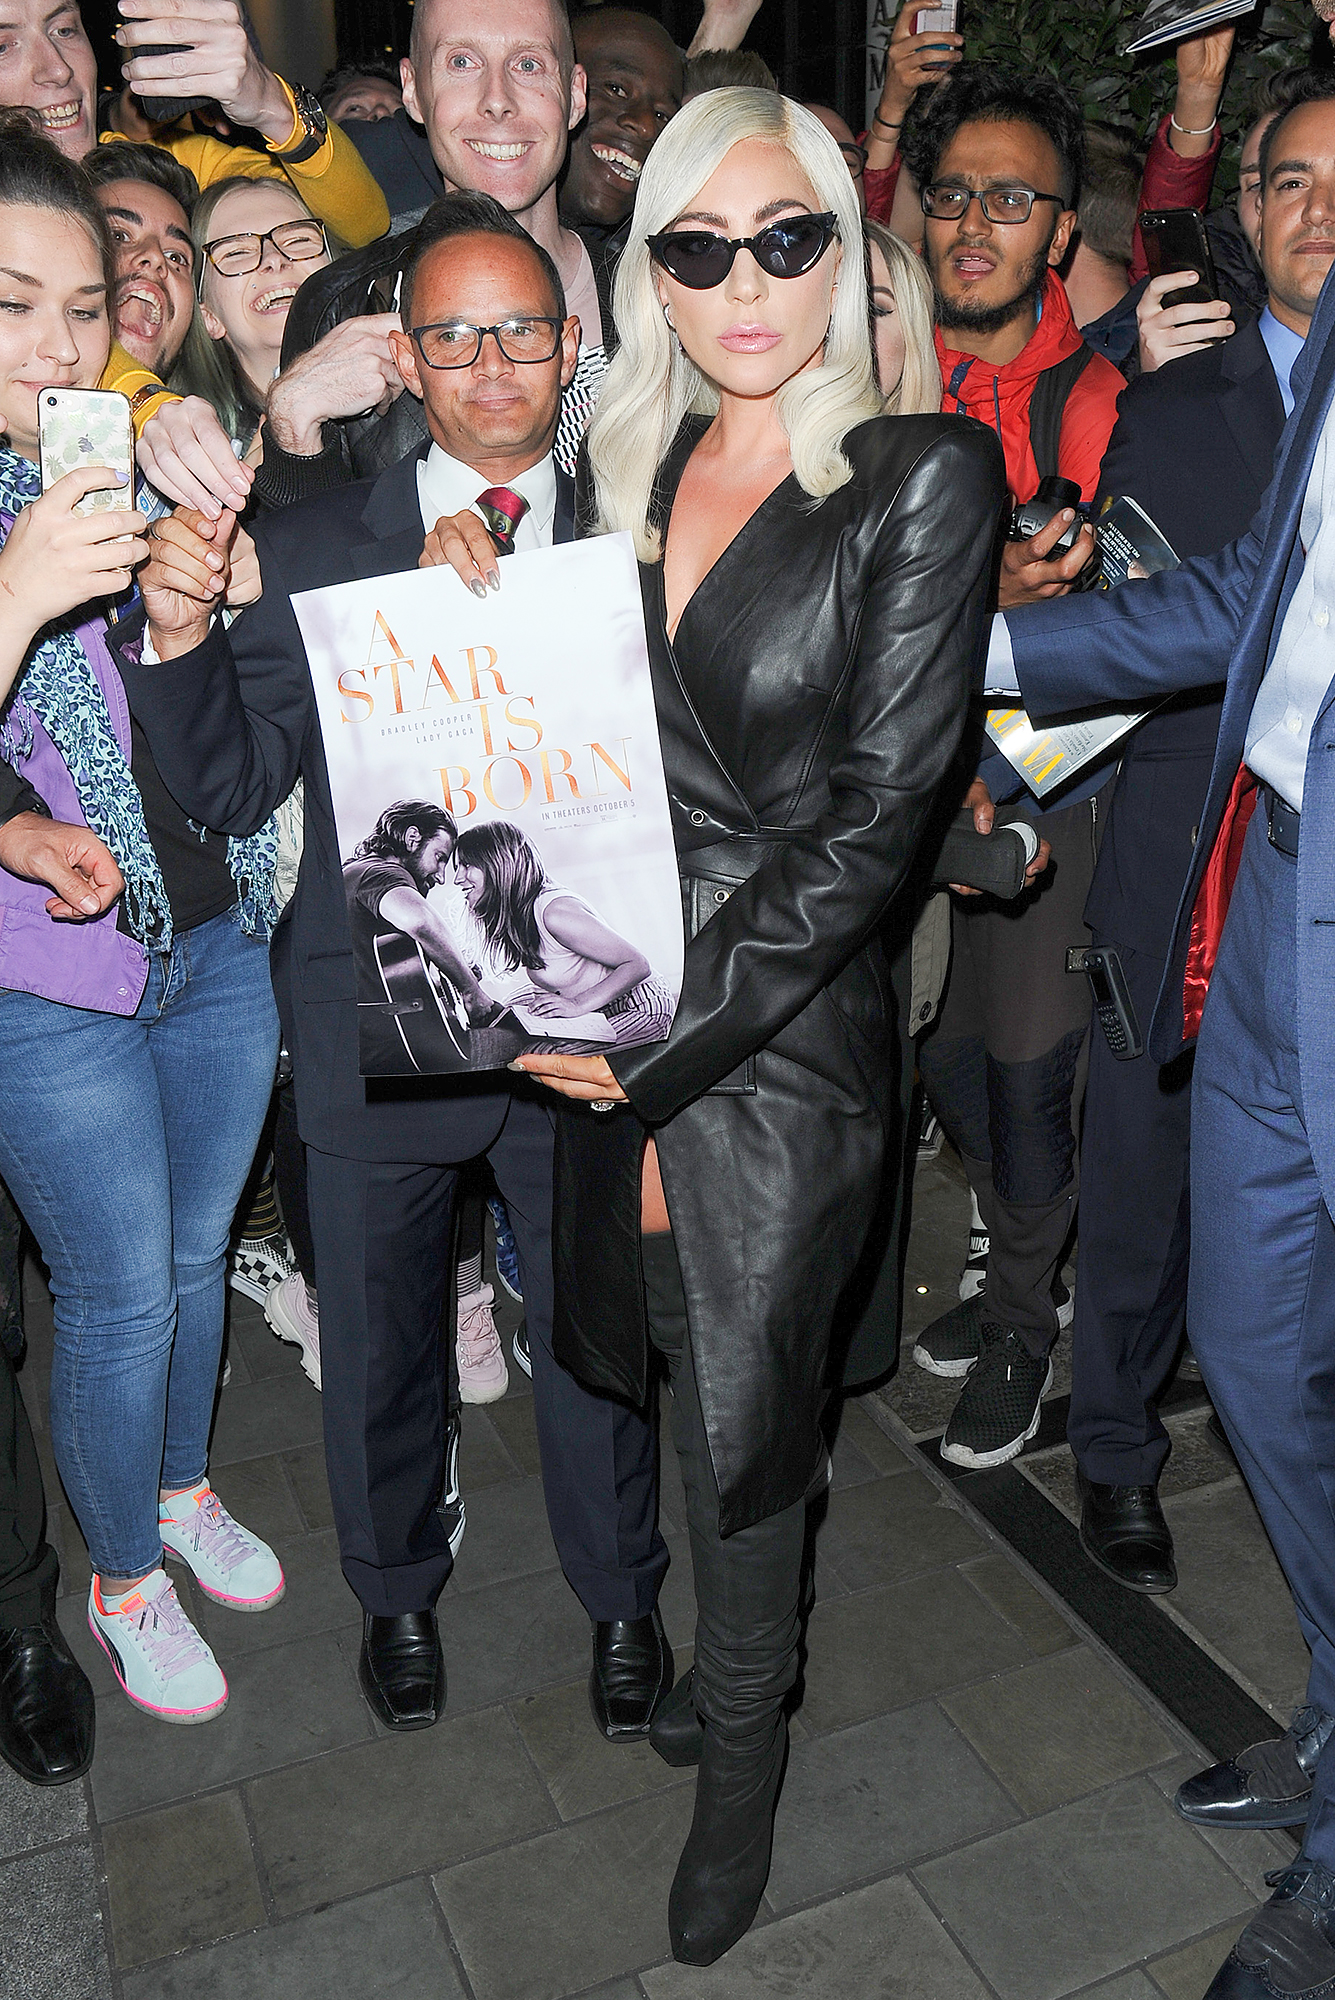 Lady Gaga is Pictured Leaving Her Hotel in London